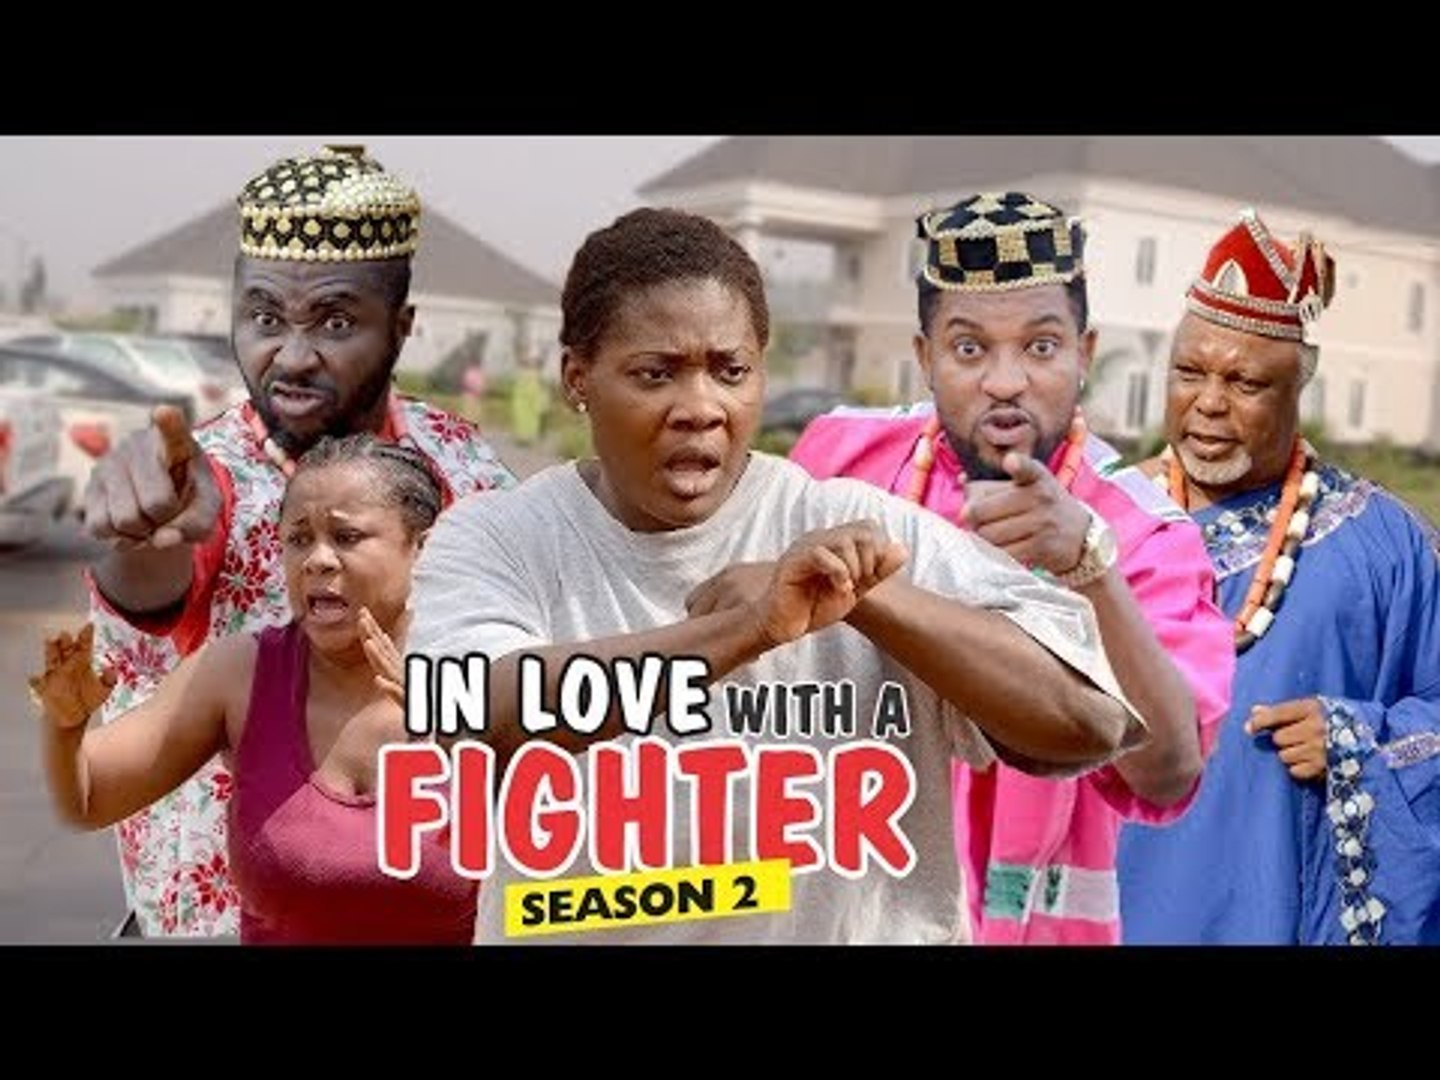 IN LOVE WITH A FIGHTER 2 - 2018 LATEST NIGERIAN NOLLYWOOD MOVIES    TRENDING NOLLYWOOD MOVIES